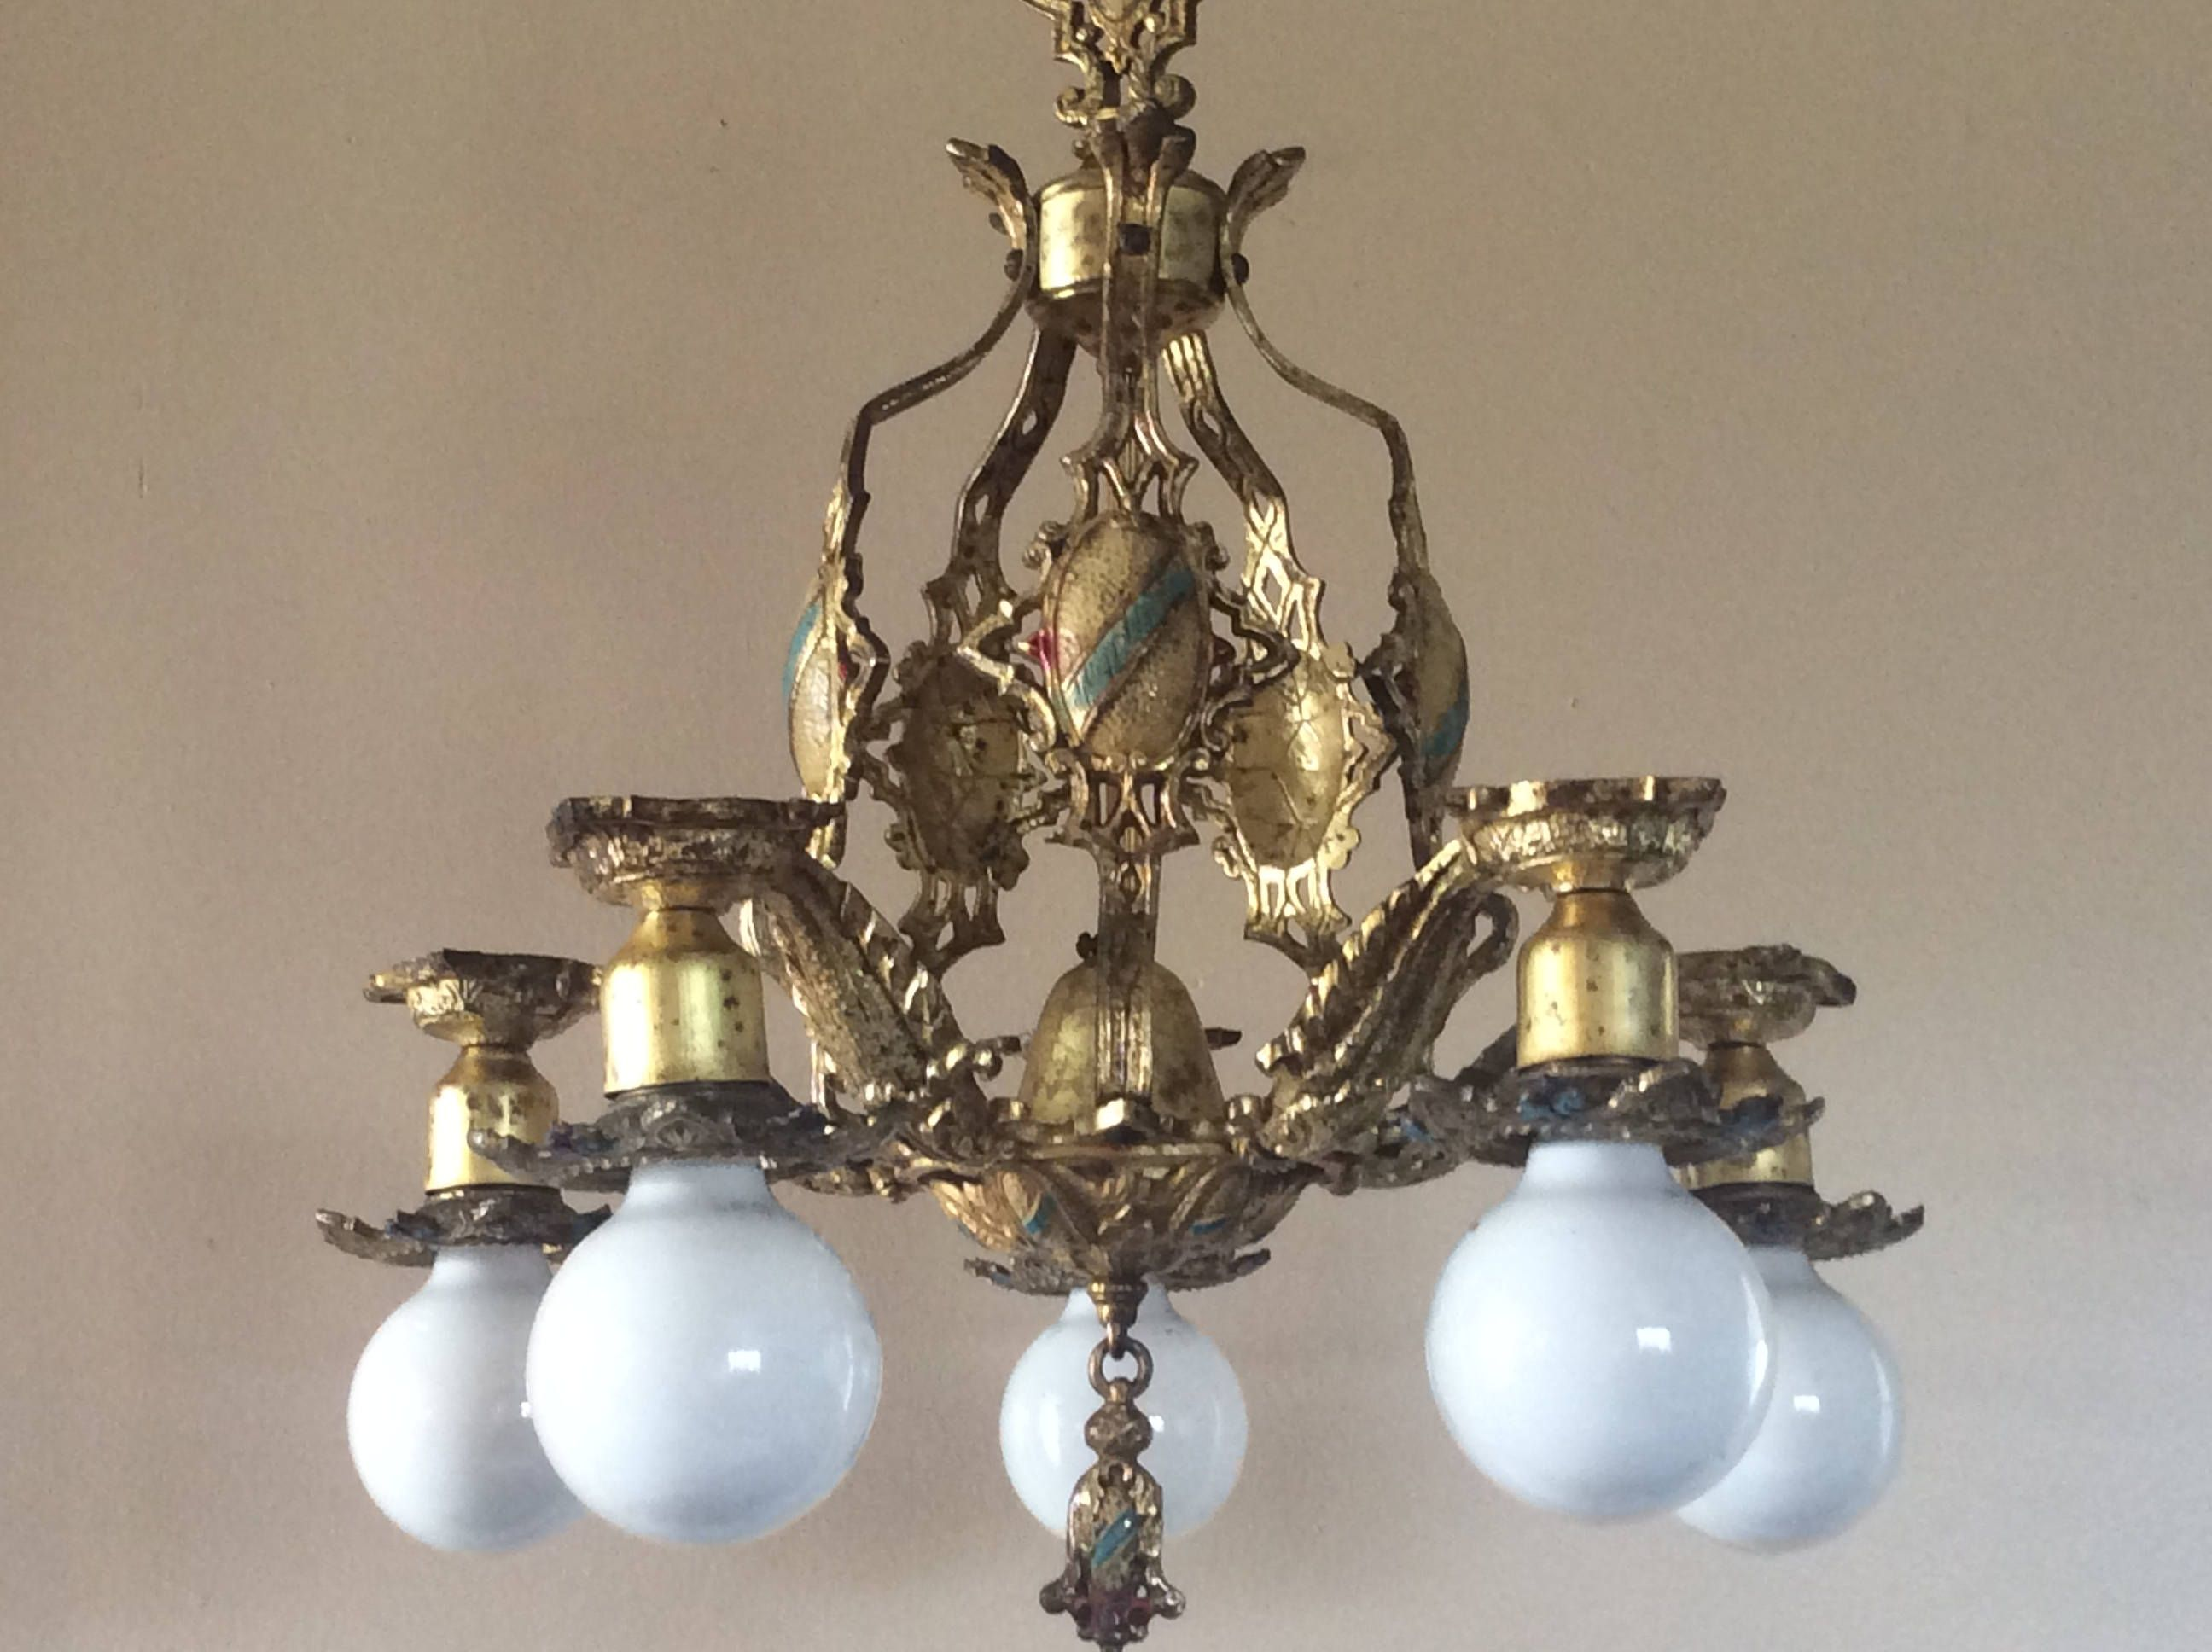 Antique art deco chandelier early 1900s cast brass polychrome 5 antique art deco chandelier early 1900s cast brass polychrome 5 light tudor original arubaitofo Image collections